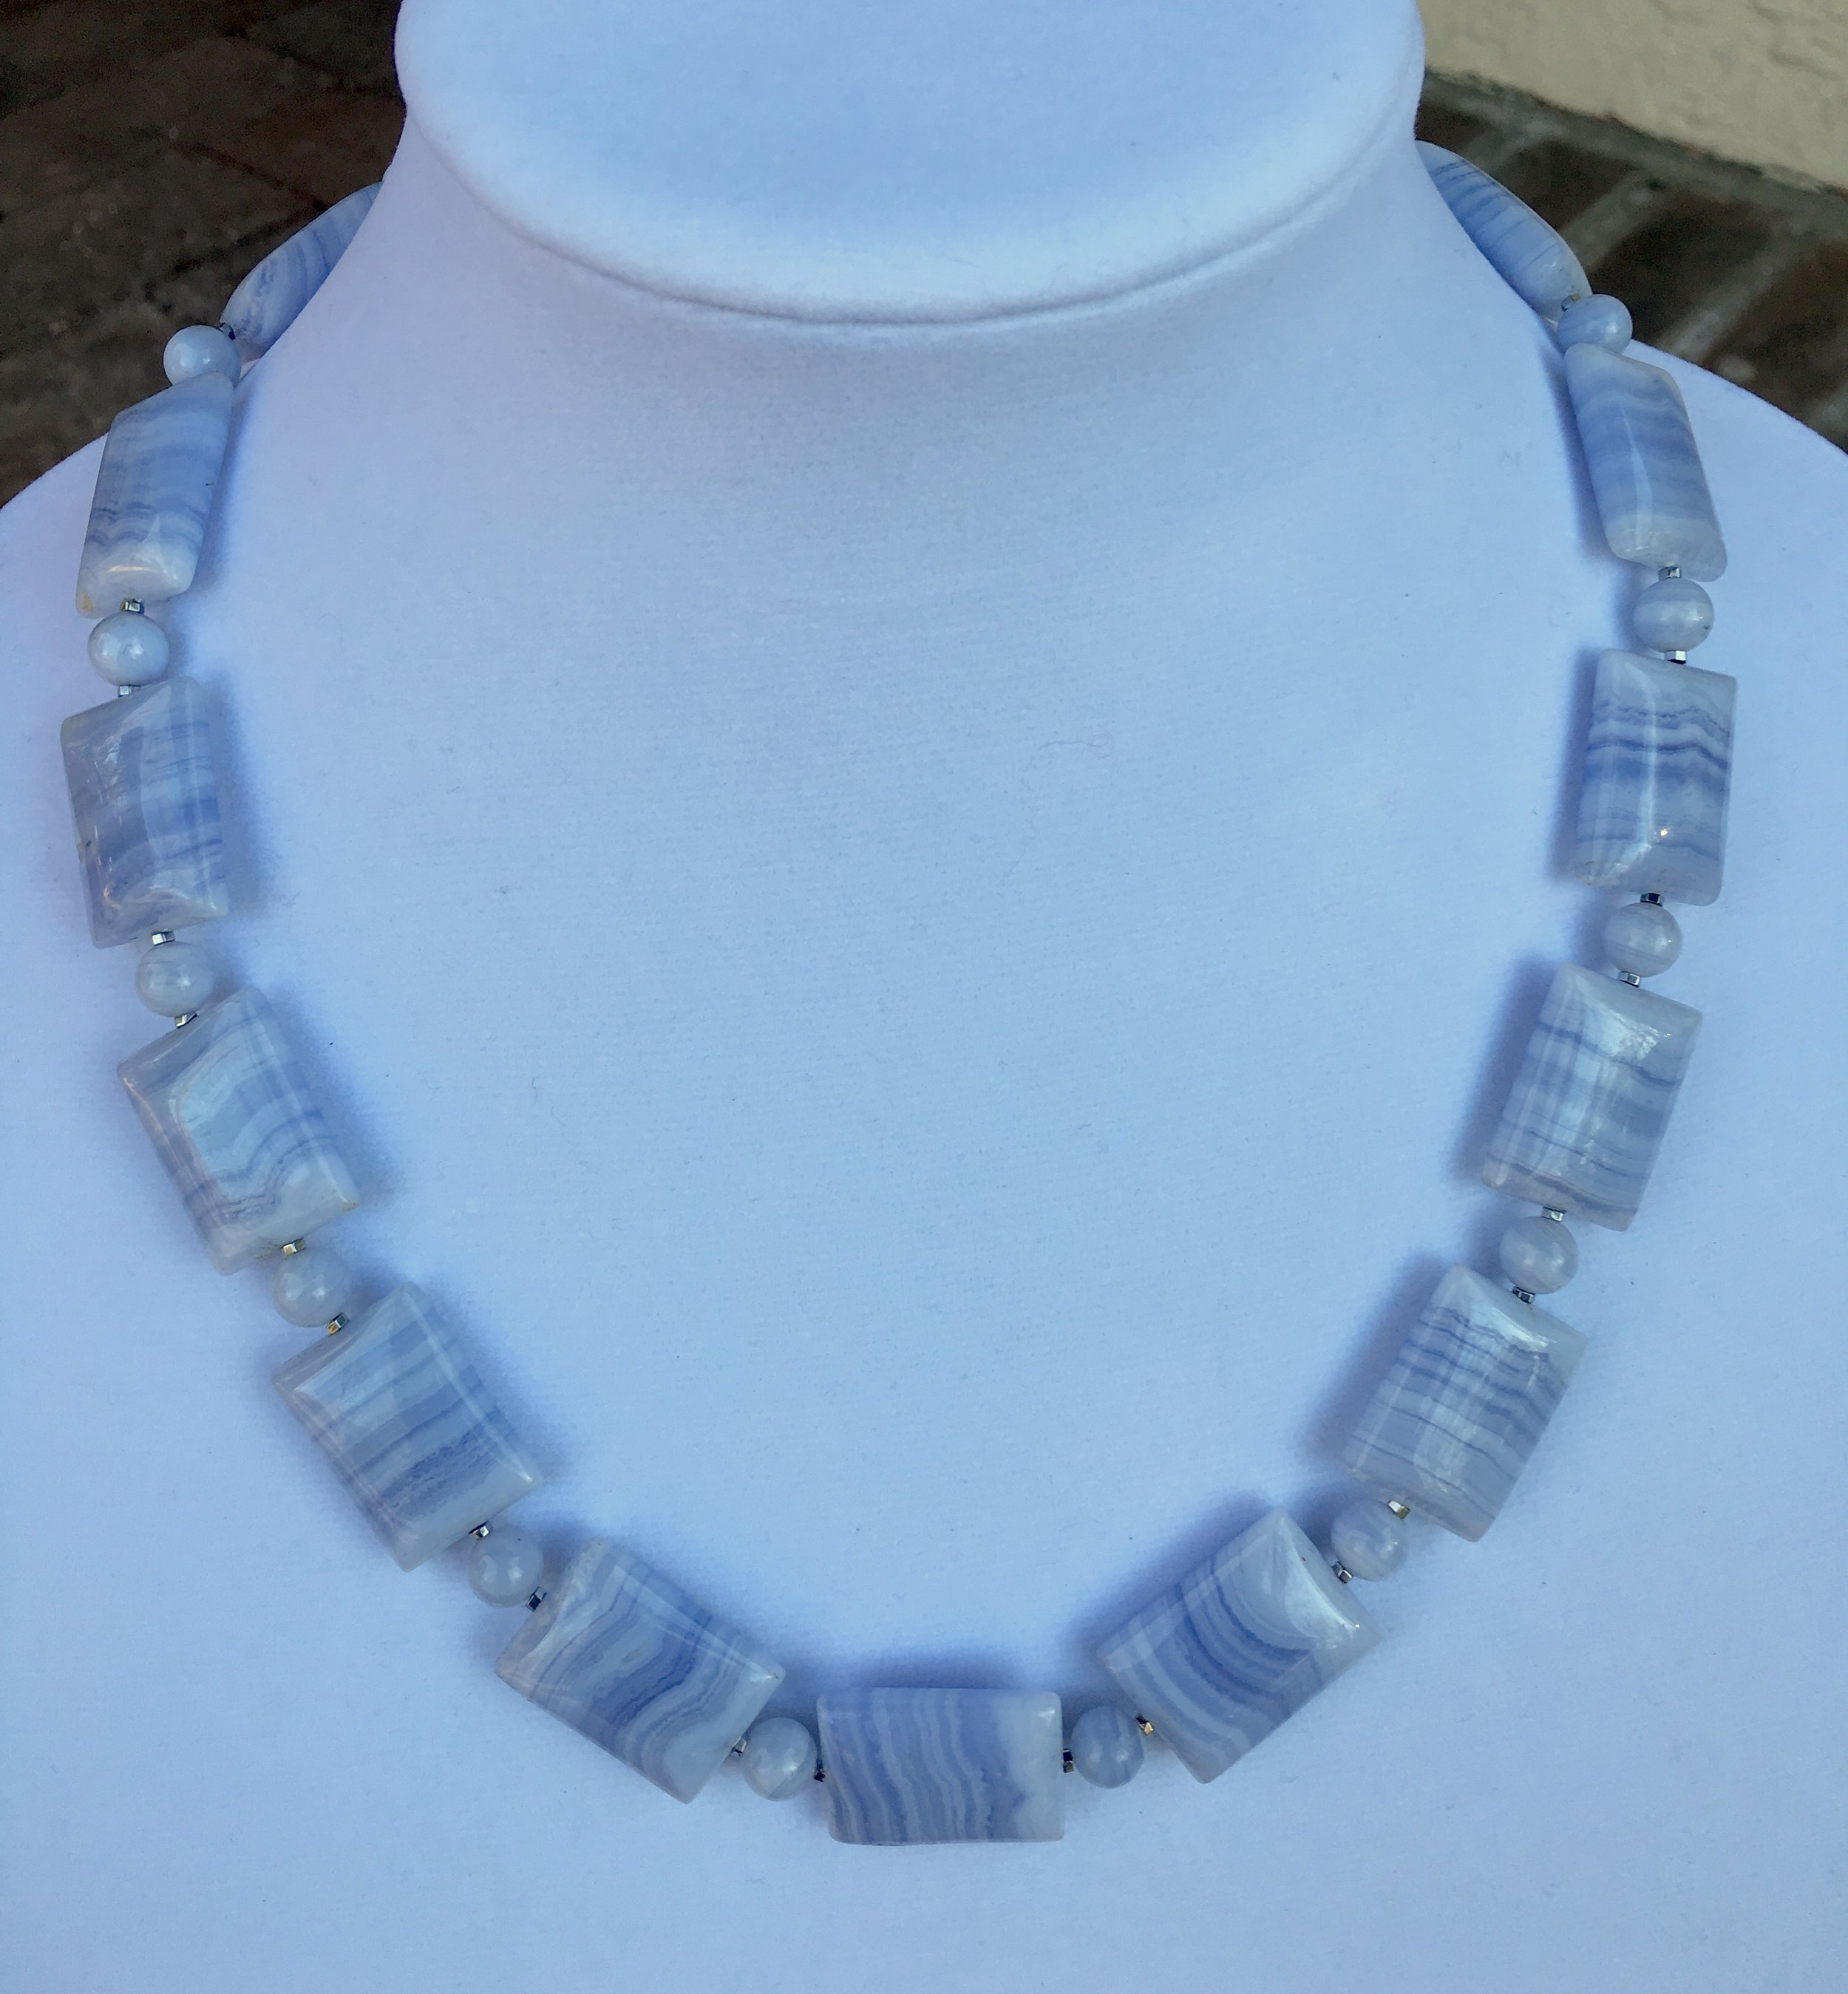 blue lace agate NECKLACE  18 x 26 mm rectangular blue lace agate beads with very delicate lines.Very fine. 8 mm round blue lace agate beads. Price has jumped for blue lace agate and I can't find this nice quality anymore. Sterling silver clasp.21 in. $350